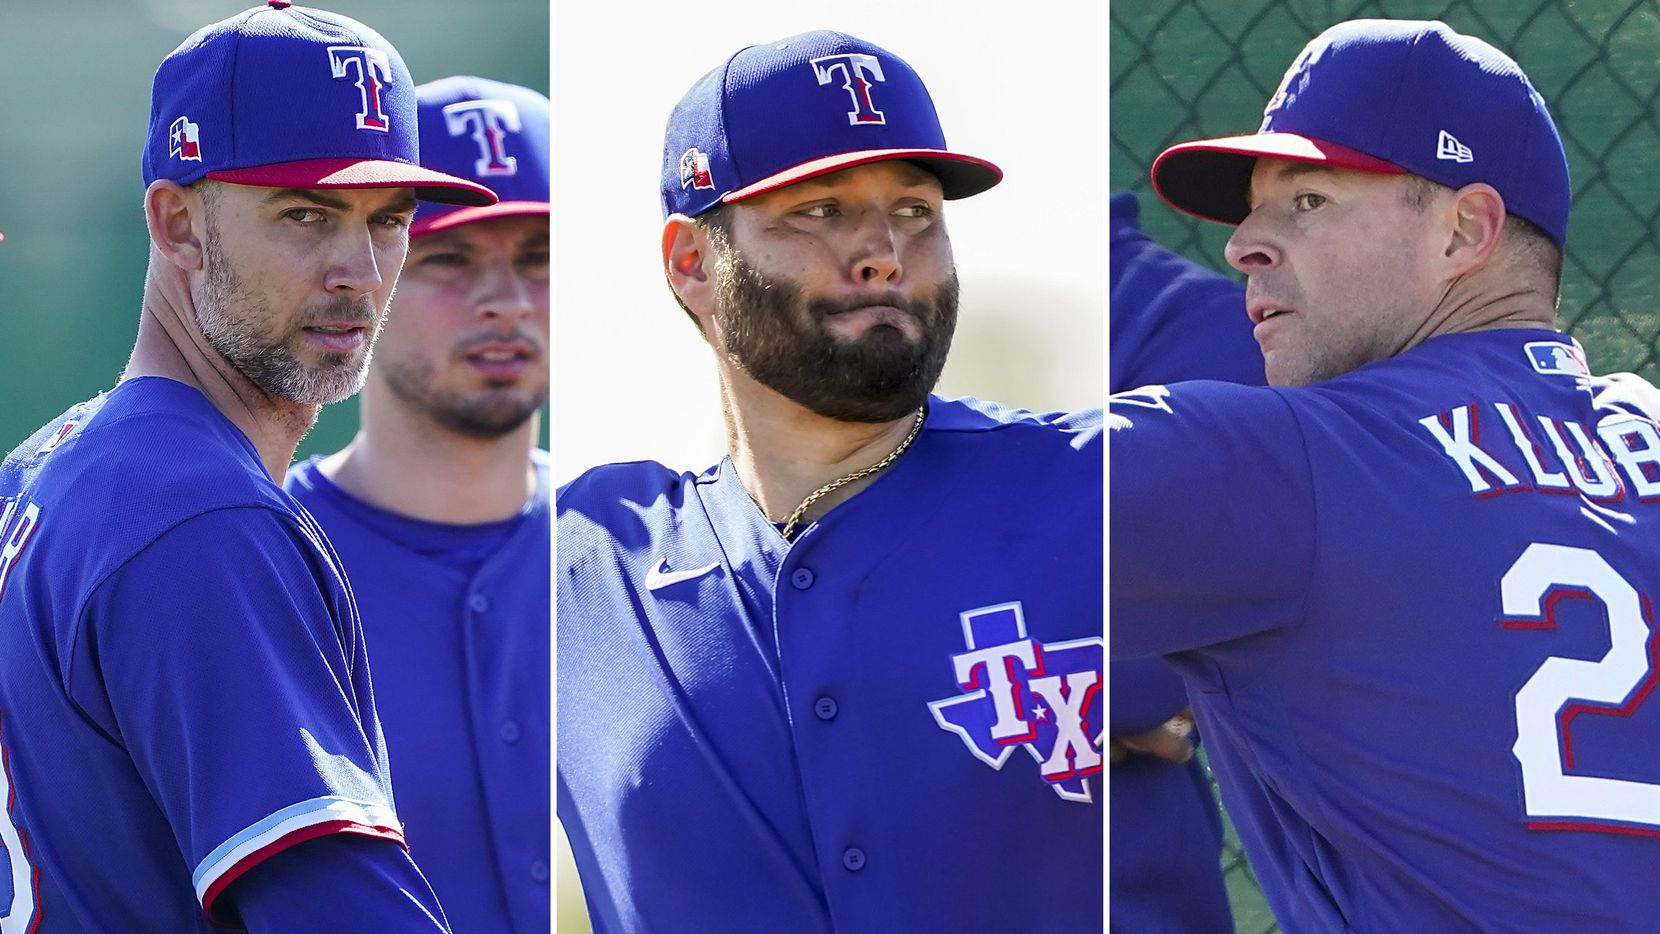 Texas Rangers pitchers Mike Minor, Lance Lynn, and Corey Kluber (L to R) at spring training.